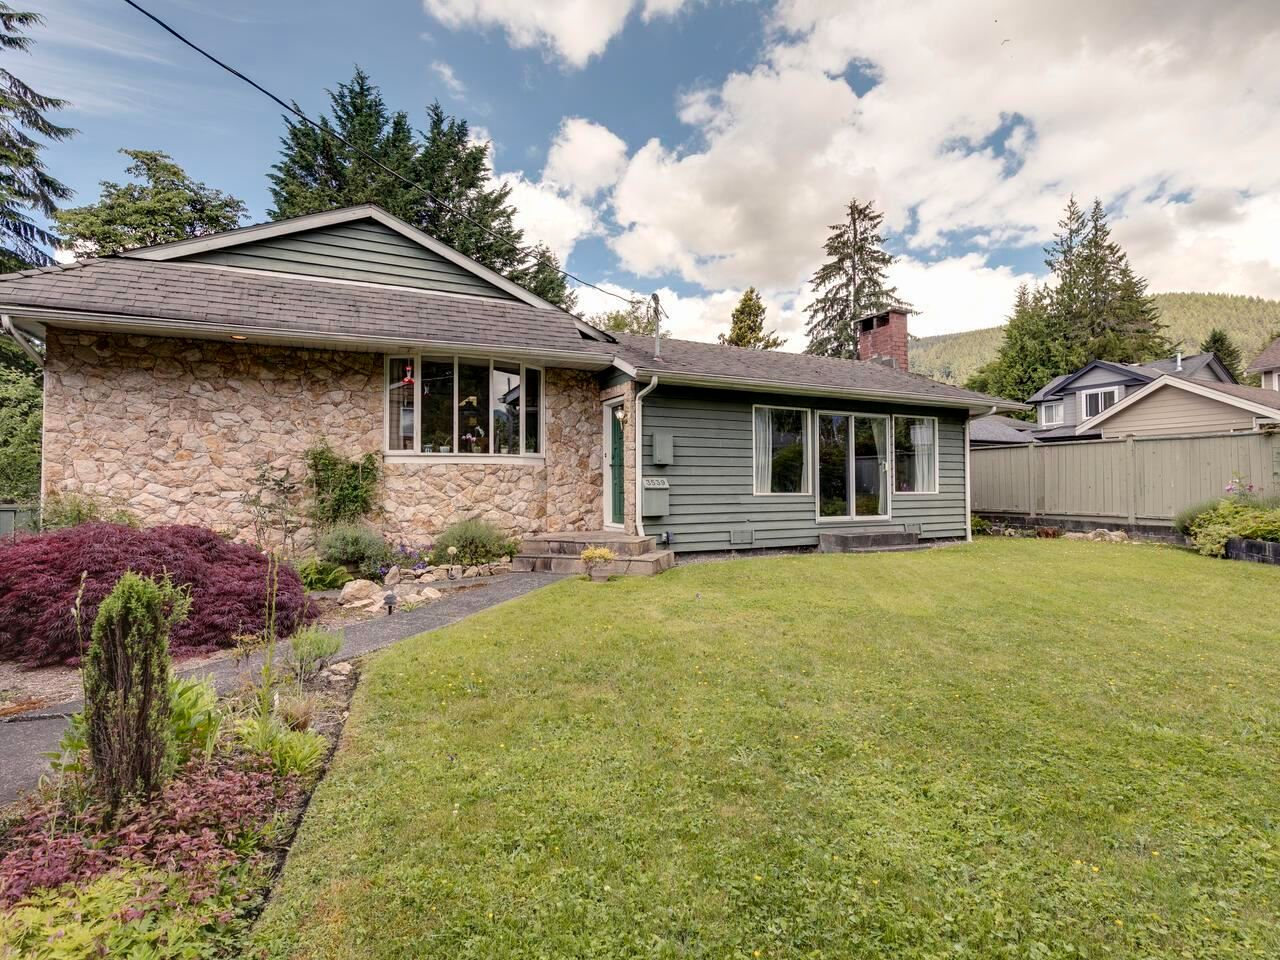 Main Photo: 3539 CHURCH Street in North Vancouver: Lynn Valley House for sale : MLS®# R2597579